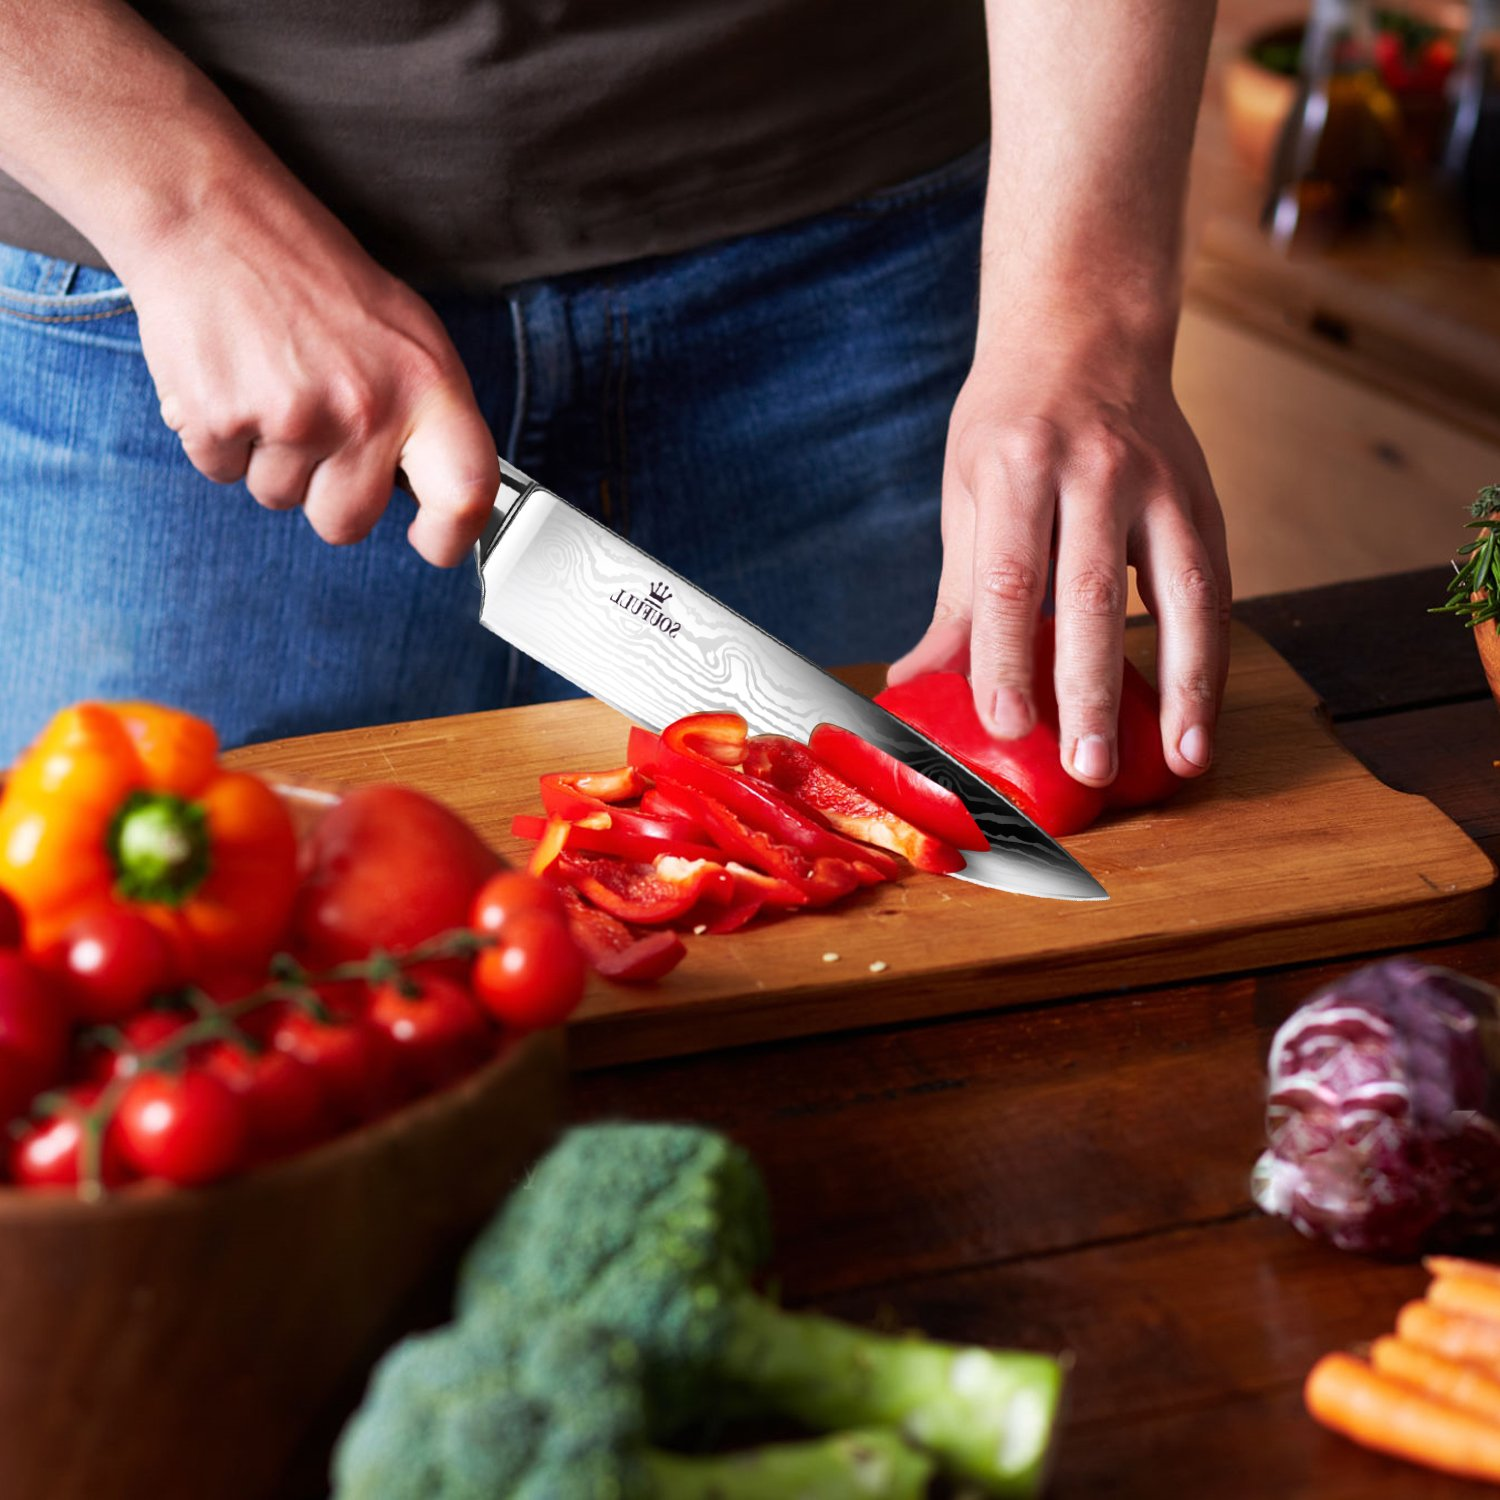 Soufull Chef Knife 8 inches Japanese Stainless Steel Gyutou Knife Professional Kitchen Knife with Ergonomic Handle by Soufull (Image #6)